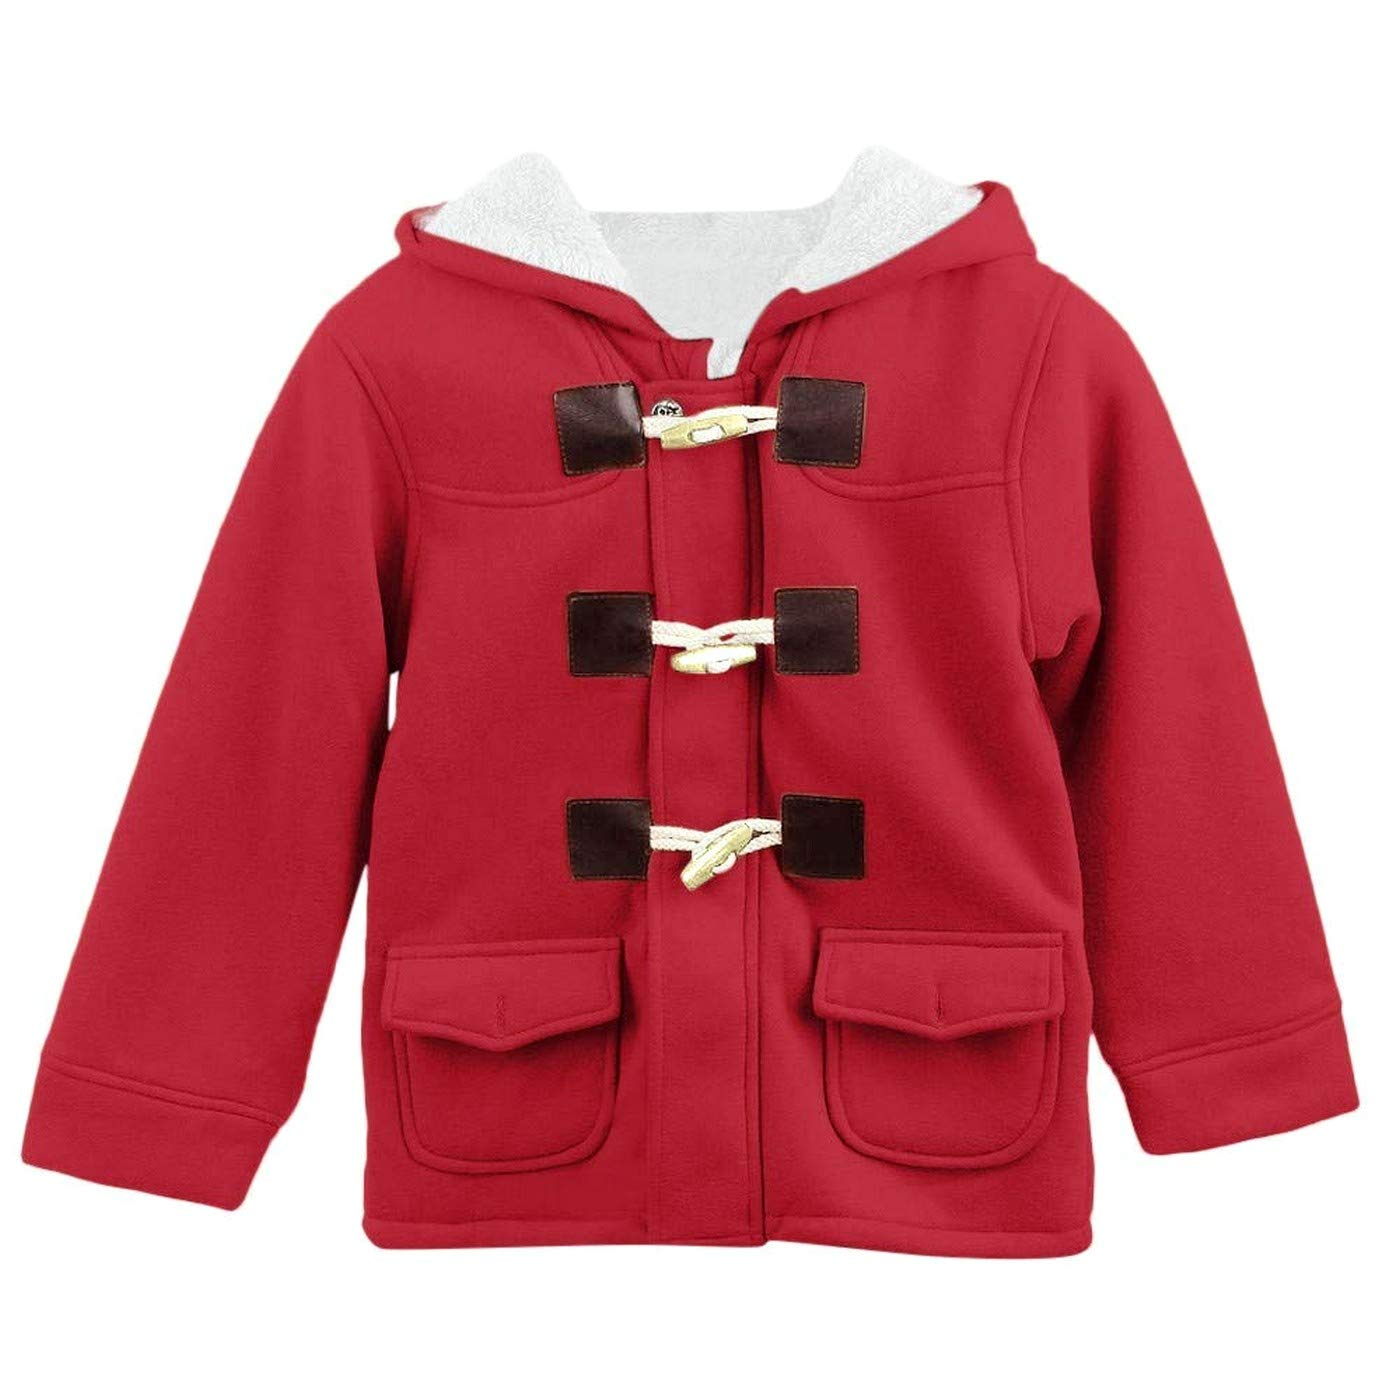 Girls-Boys-Baby Jacket Warm Winter Hot Hooded Kid Snowsuit Outwear